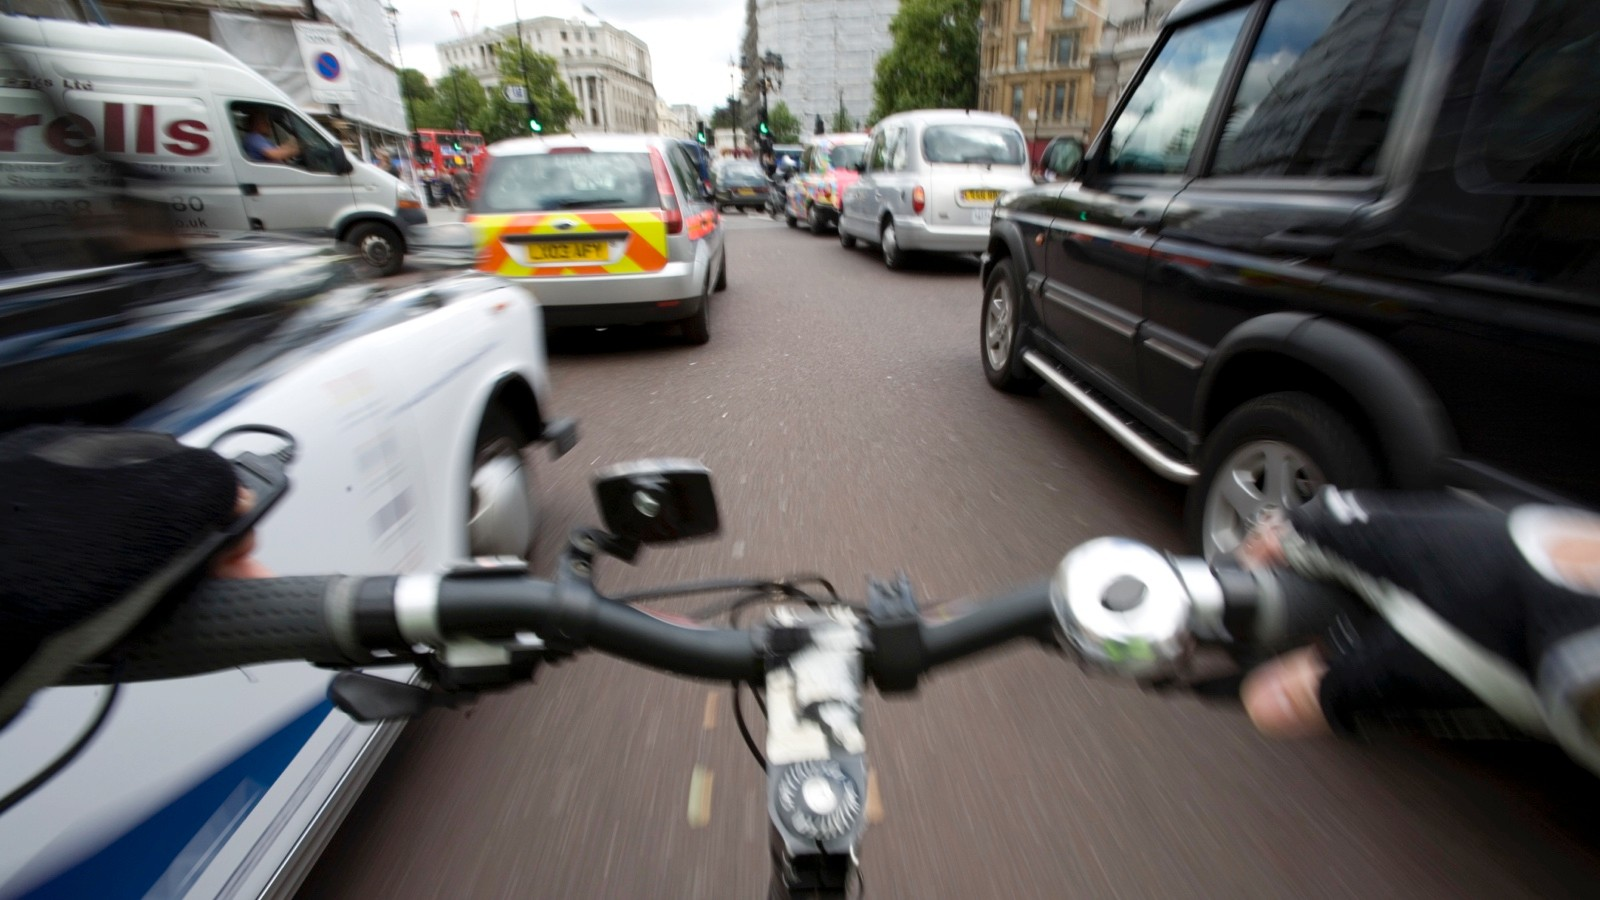 Be alert when weaving between stationary traffic — don't get boxed in